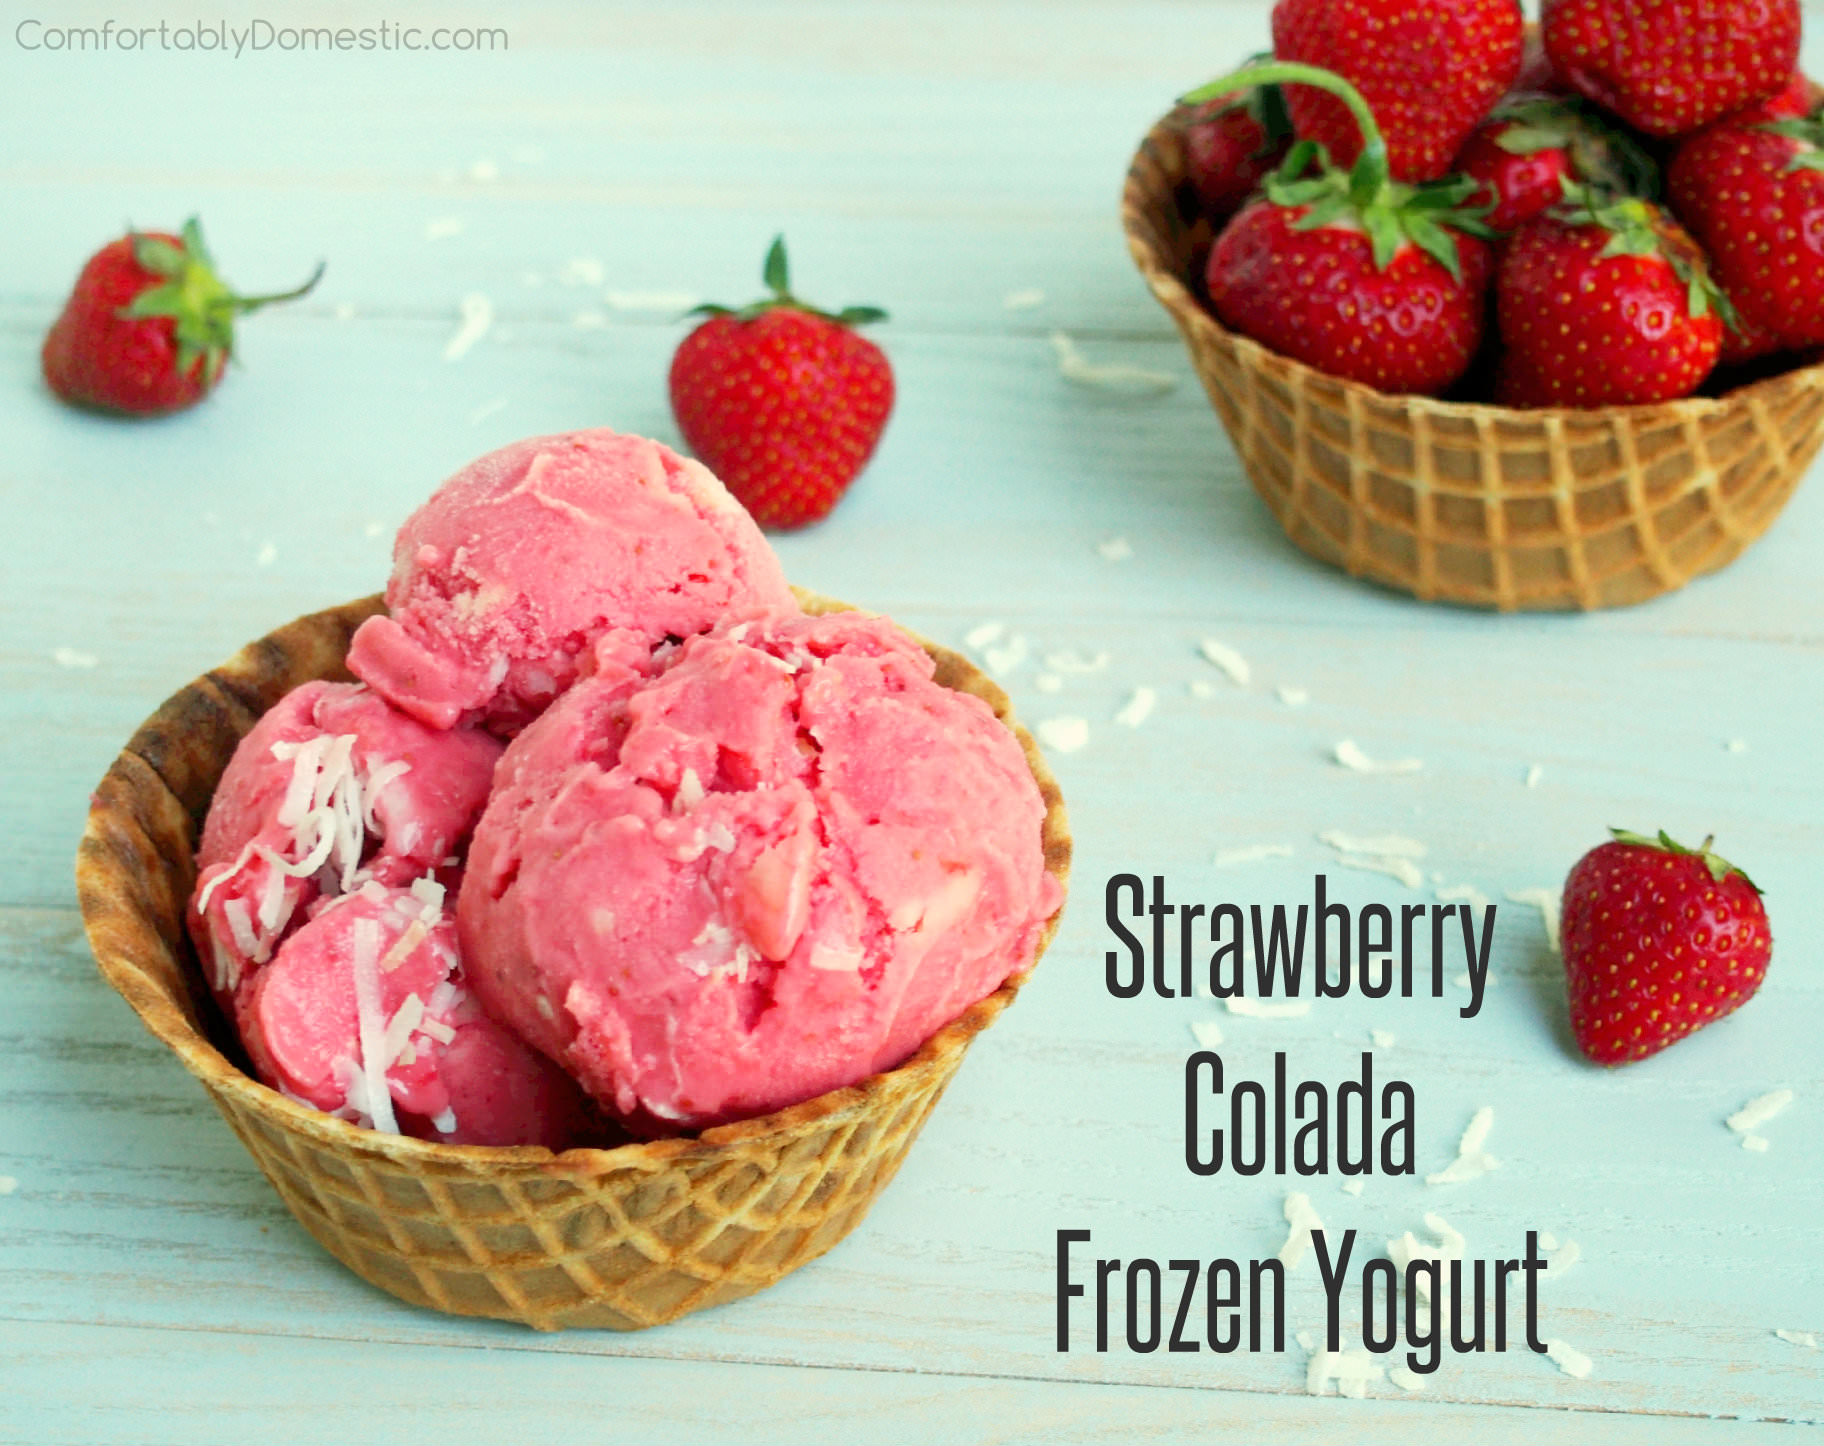 Strawberry colada frozen yogurt is a refreshing treat on a warm summer day. Ripe, juicy strawberries mingle with tangy pineapple and sweet coconut for a dreamy, creamy homemade frozen dessert. | ComfortablyDomestic.com